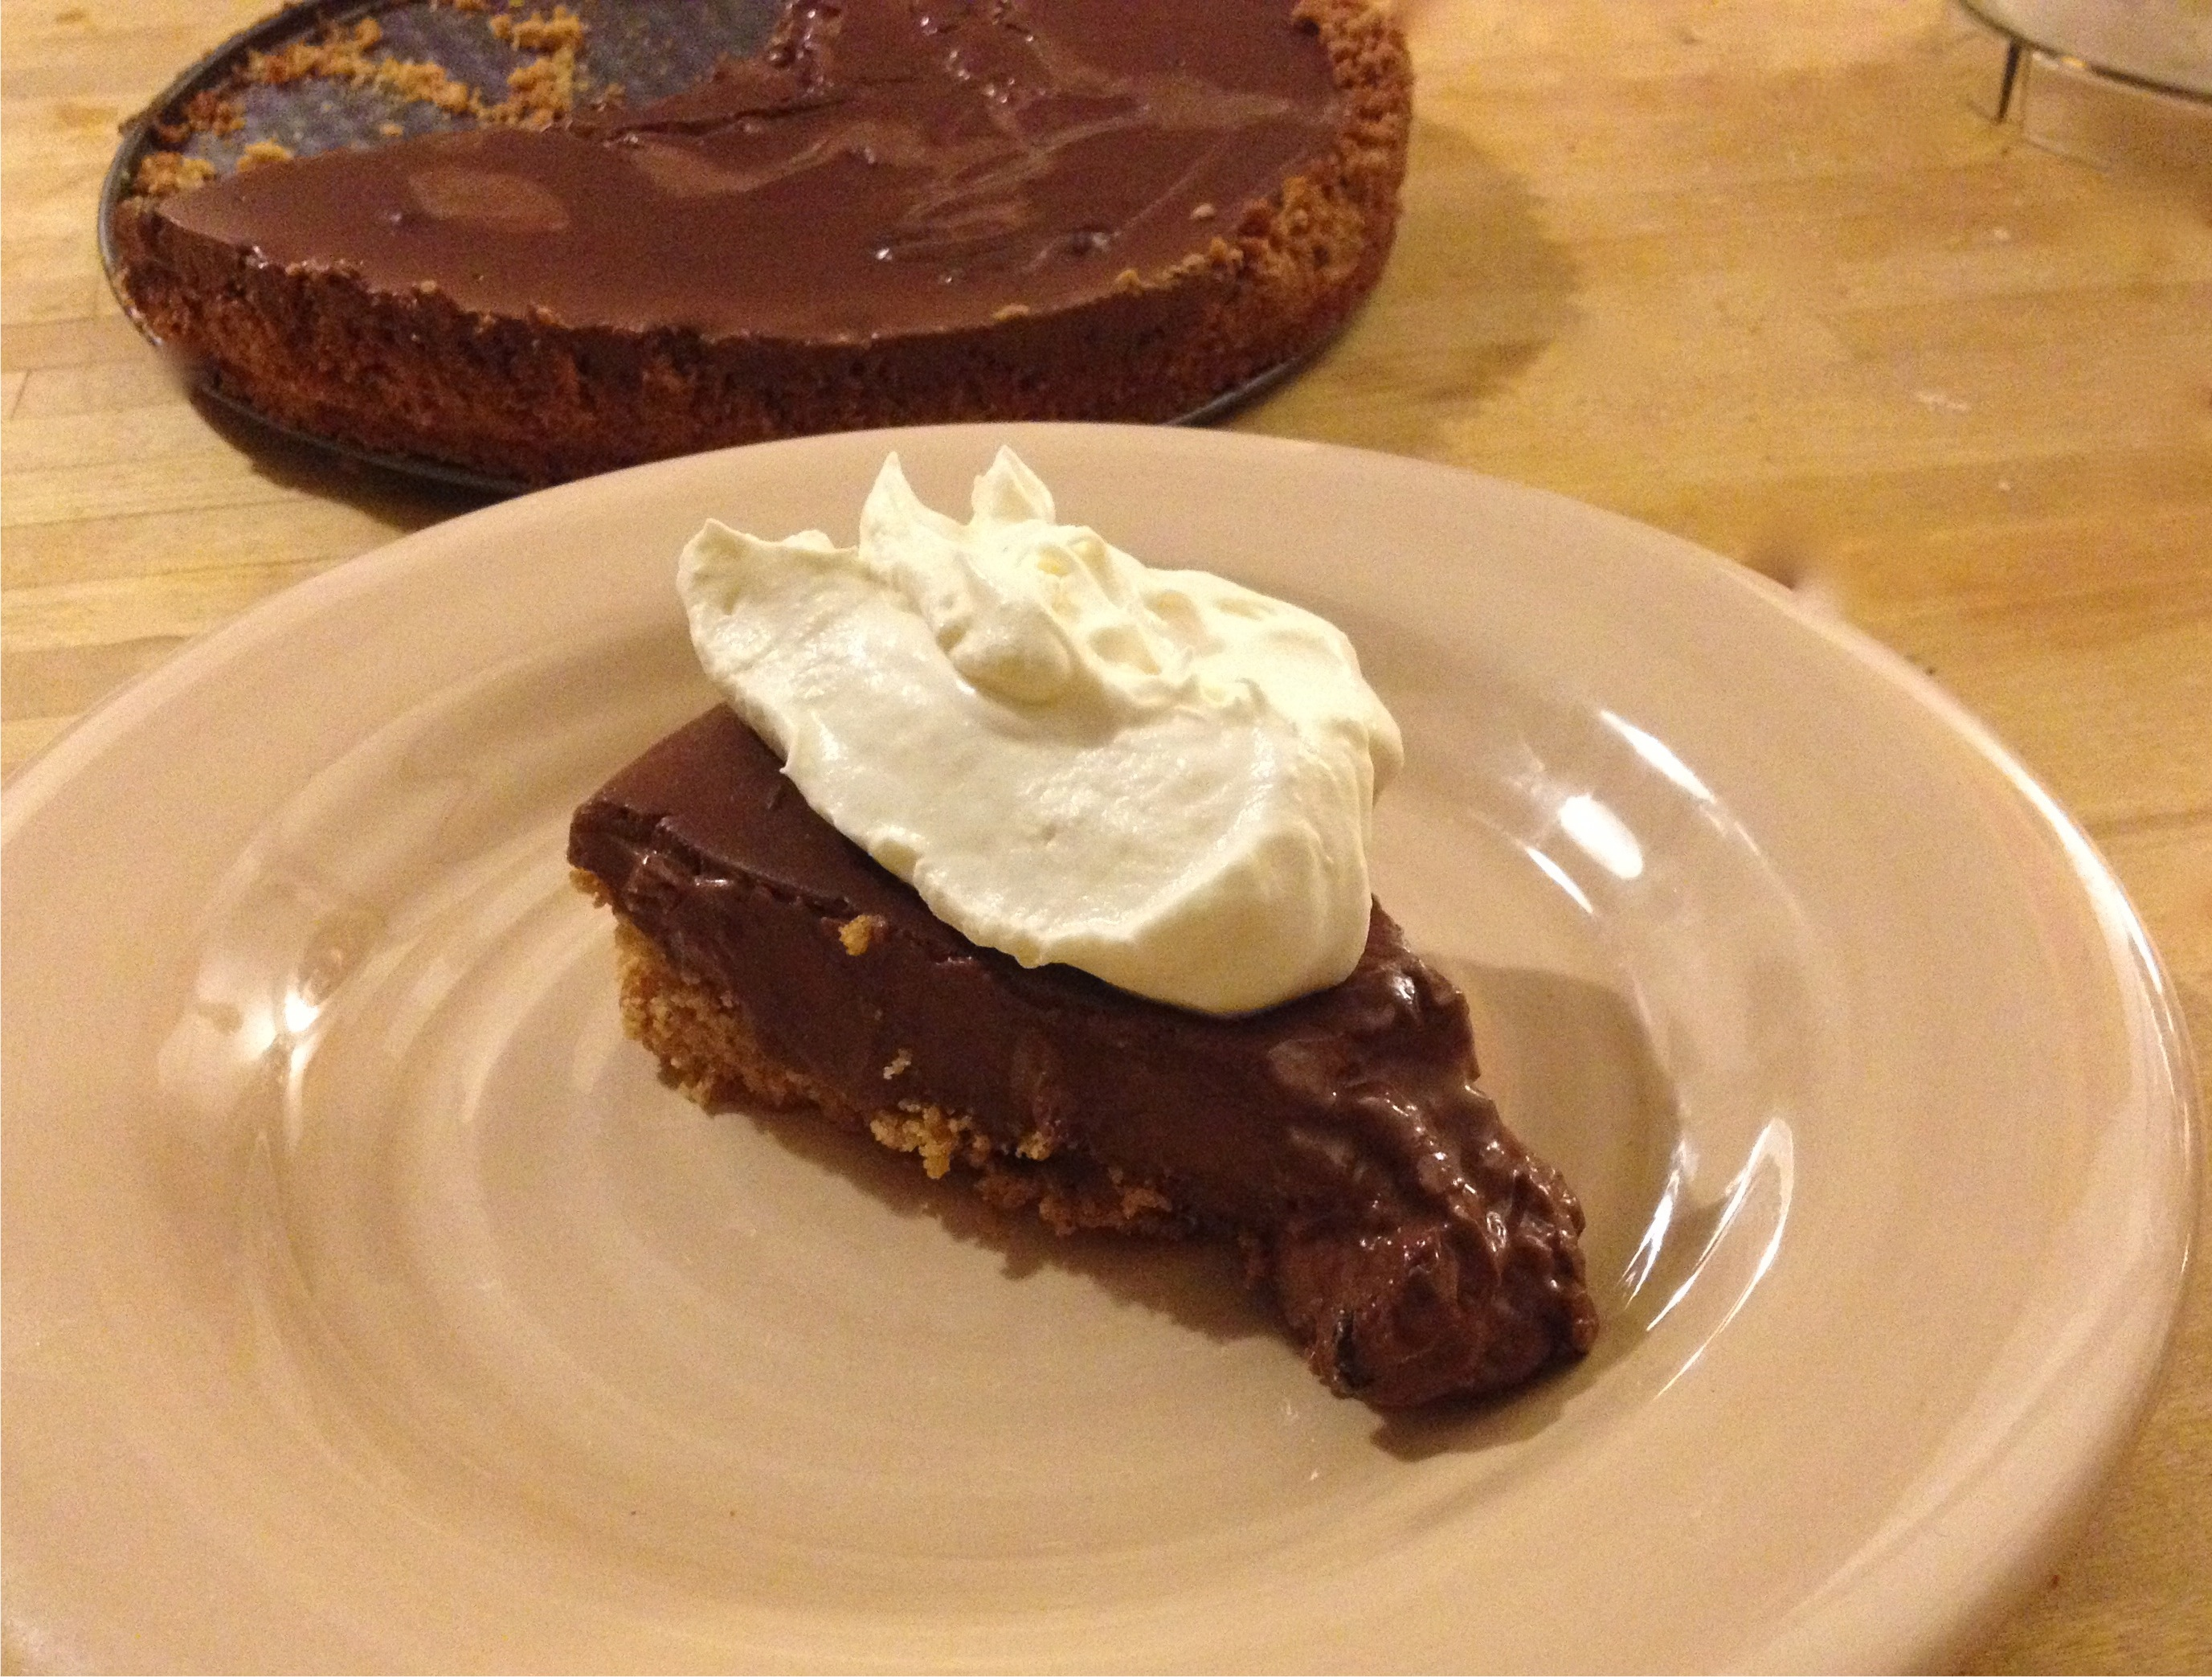 Chocolate tart with a graham cracker crust and whipped cream.